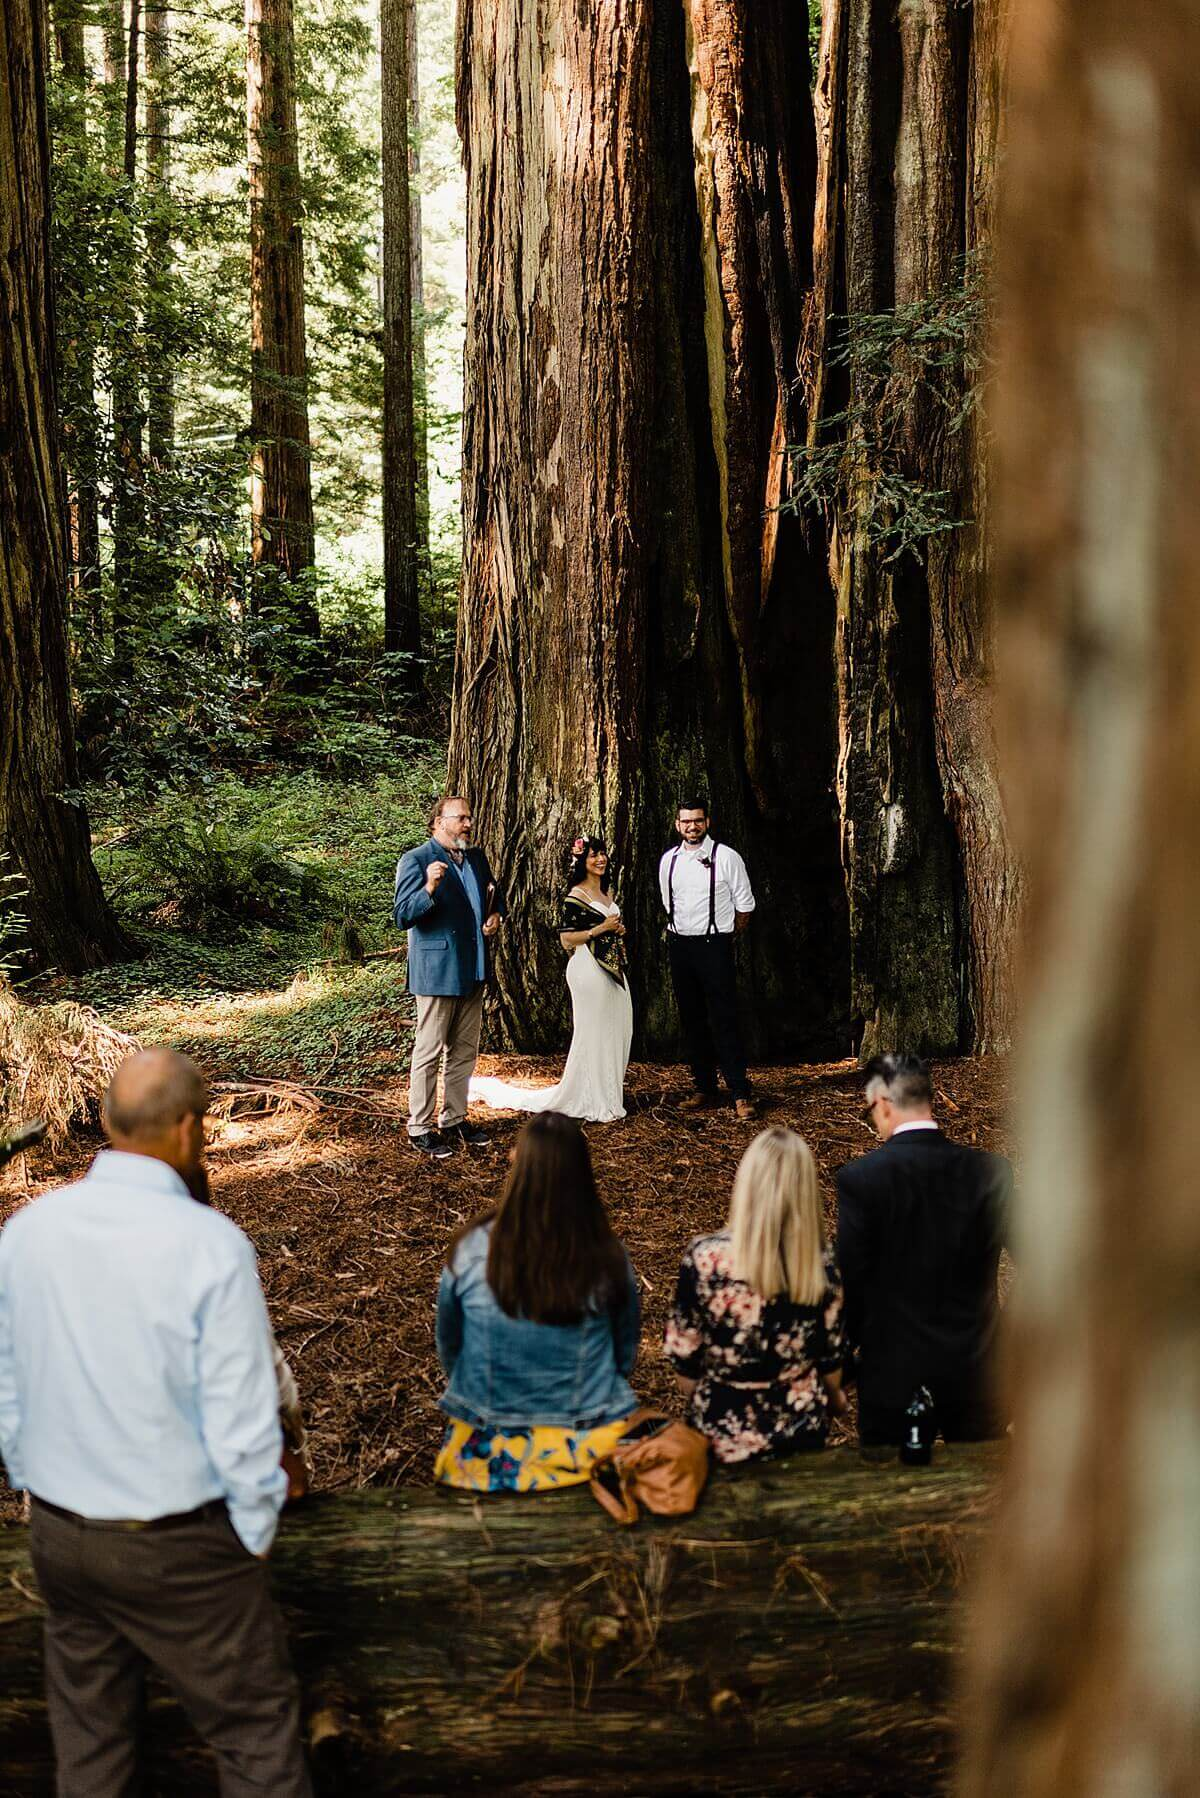 Allison-Brooks-Jedediah-Smiith-Redwoods-Adventure-Elopement-Wedding-S-Photography-Blog_0017.jpg